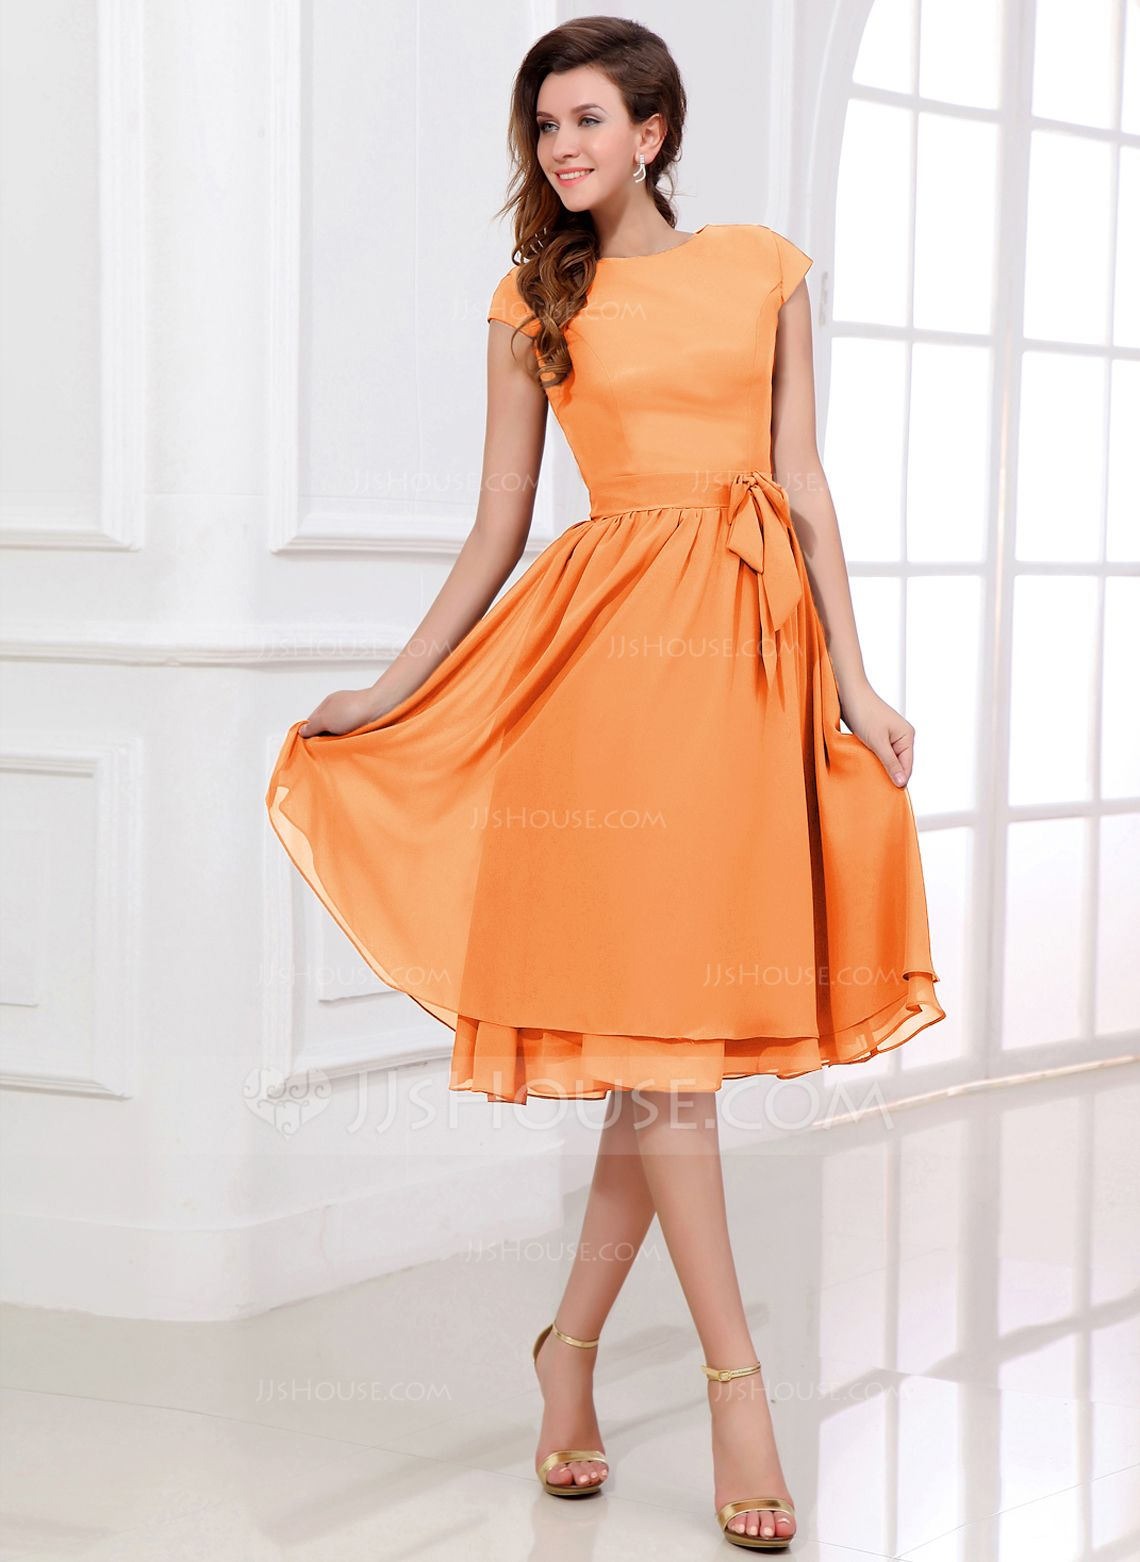 Chiffon kneelength bridesmaid dress with cap sleeves and sashes